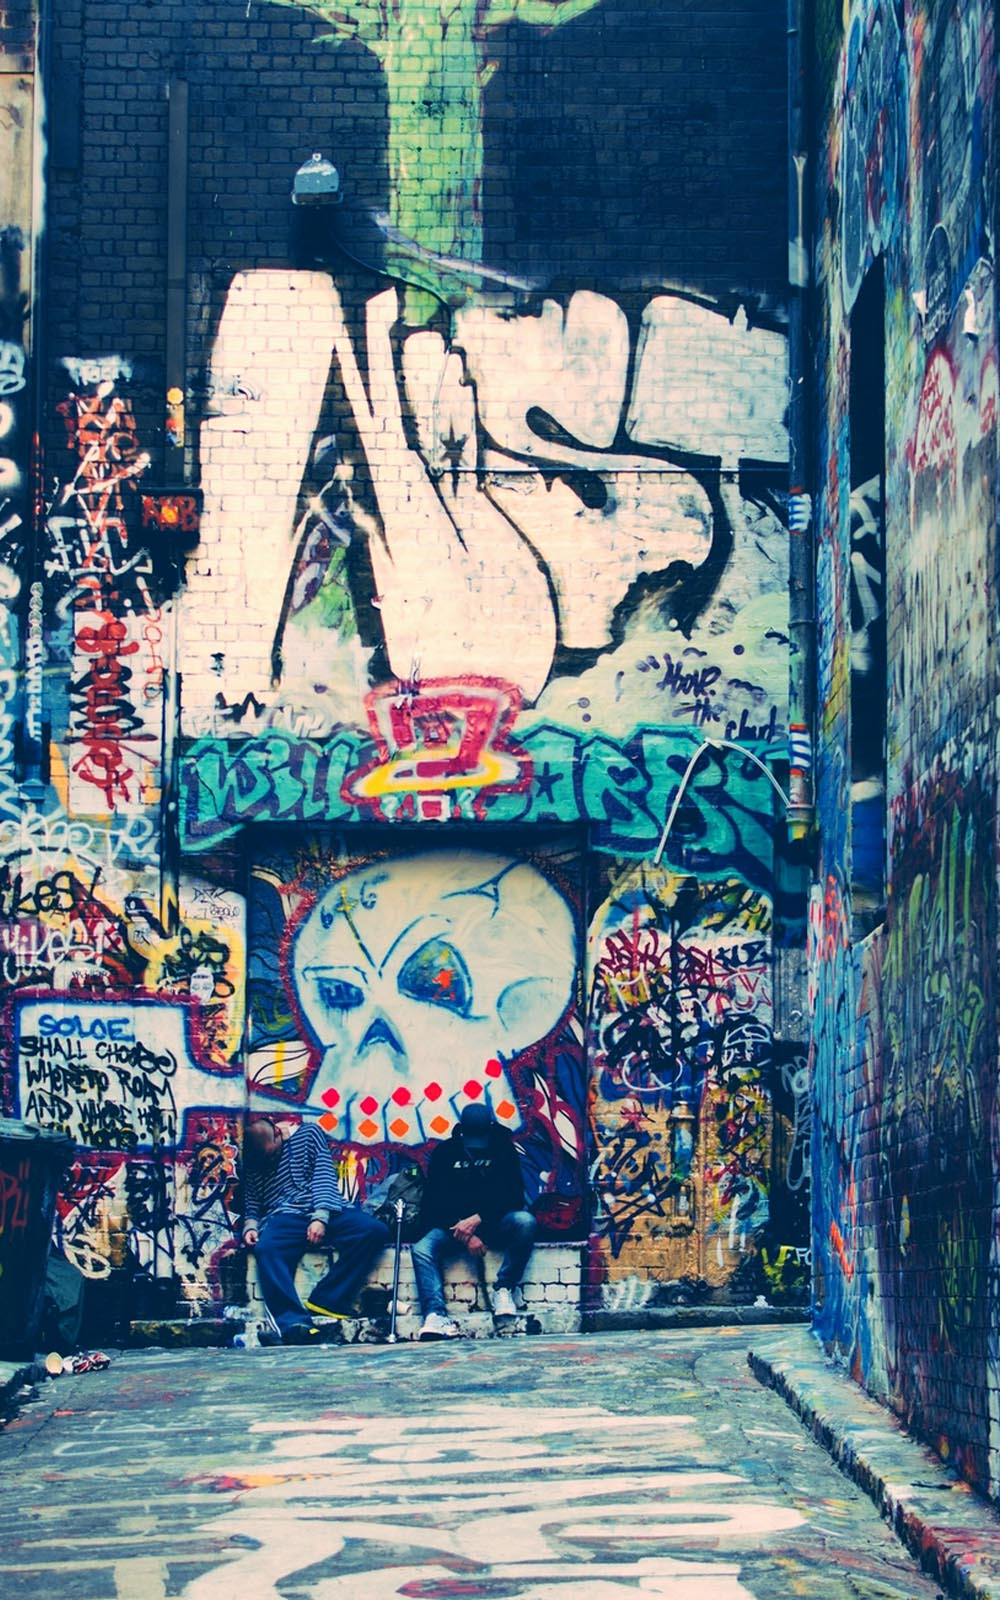 graffiti wallpapers for mobile - photo #26